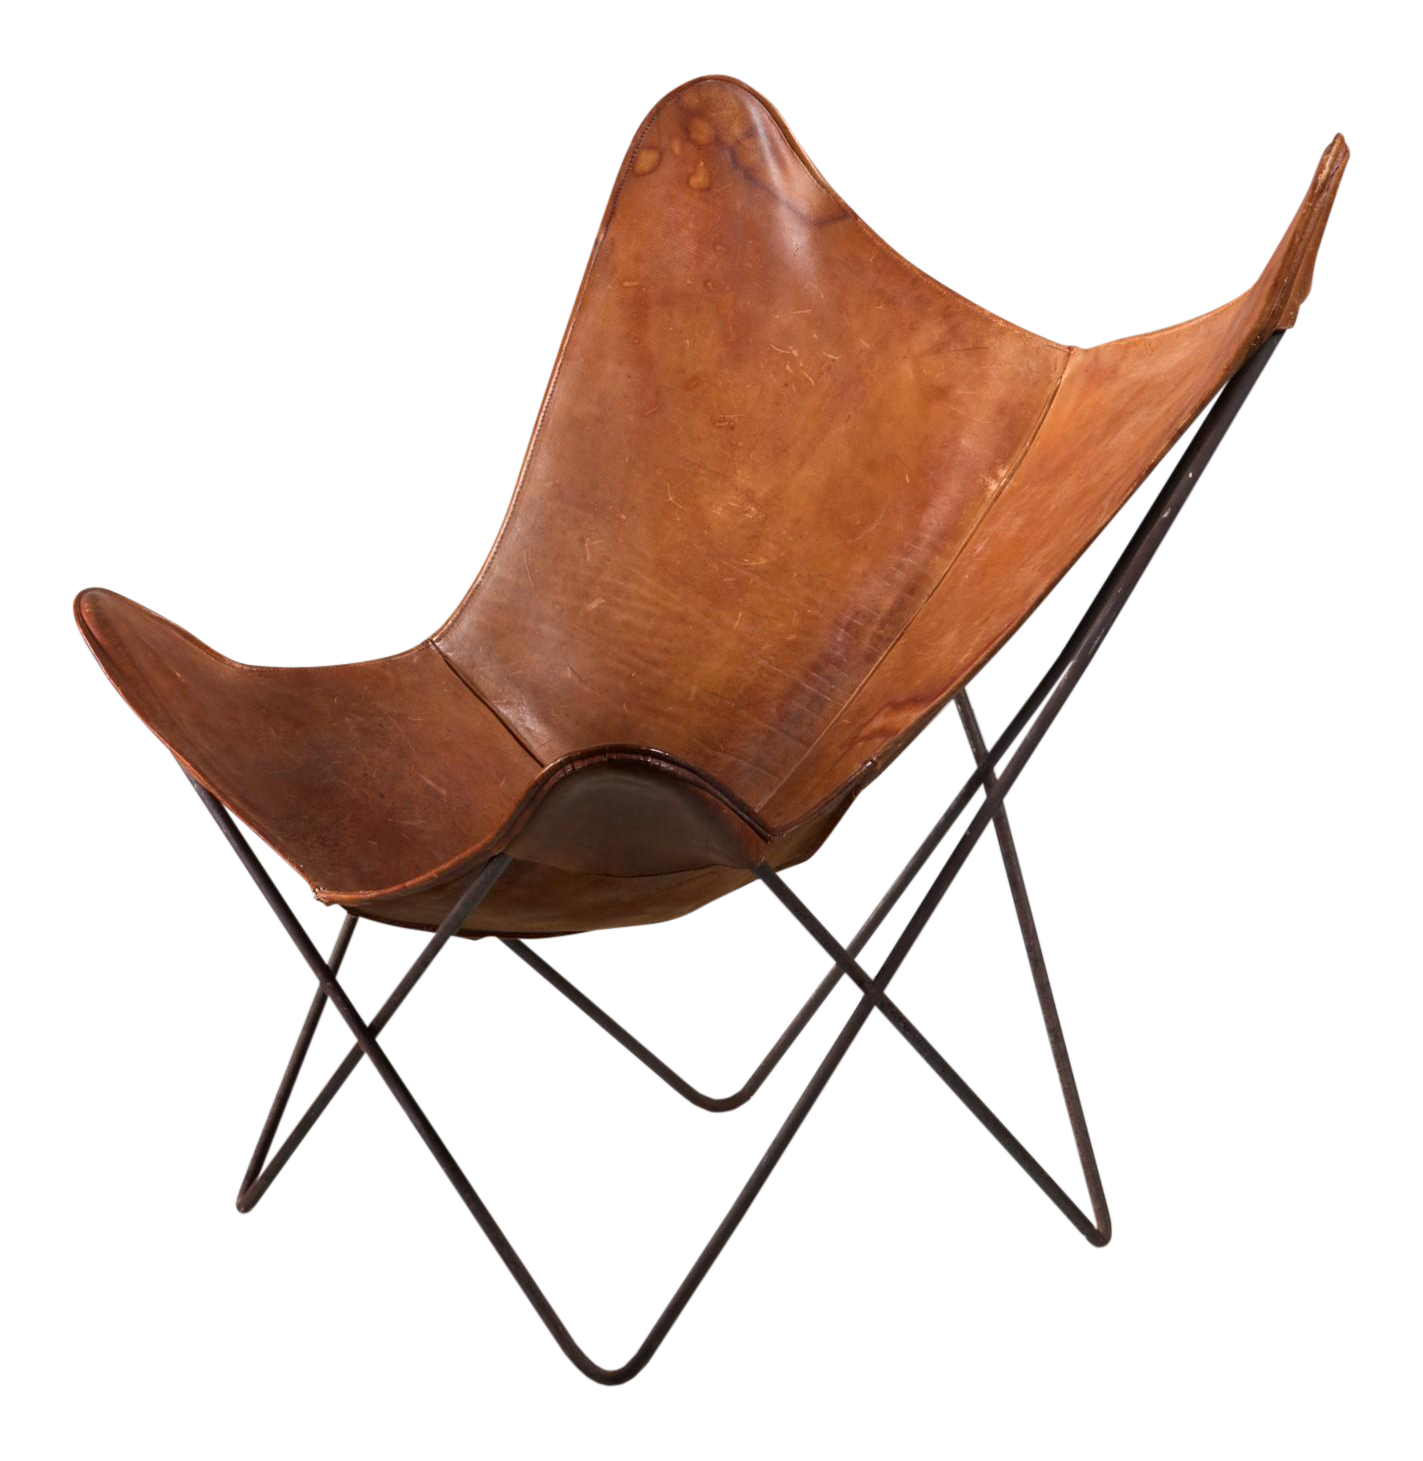 Jorge Ferrari Hardoy Butterfly Chair For Knoll, 1950s   Image 1 Of 4